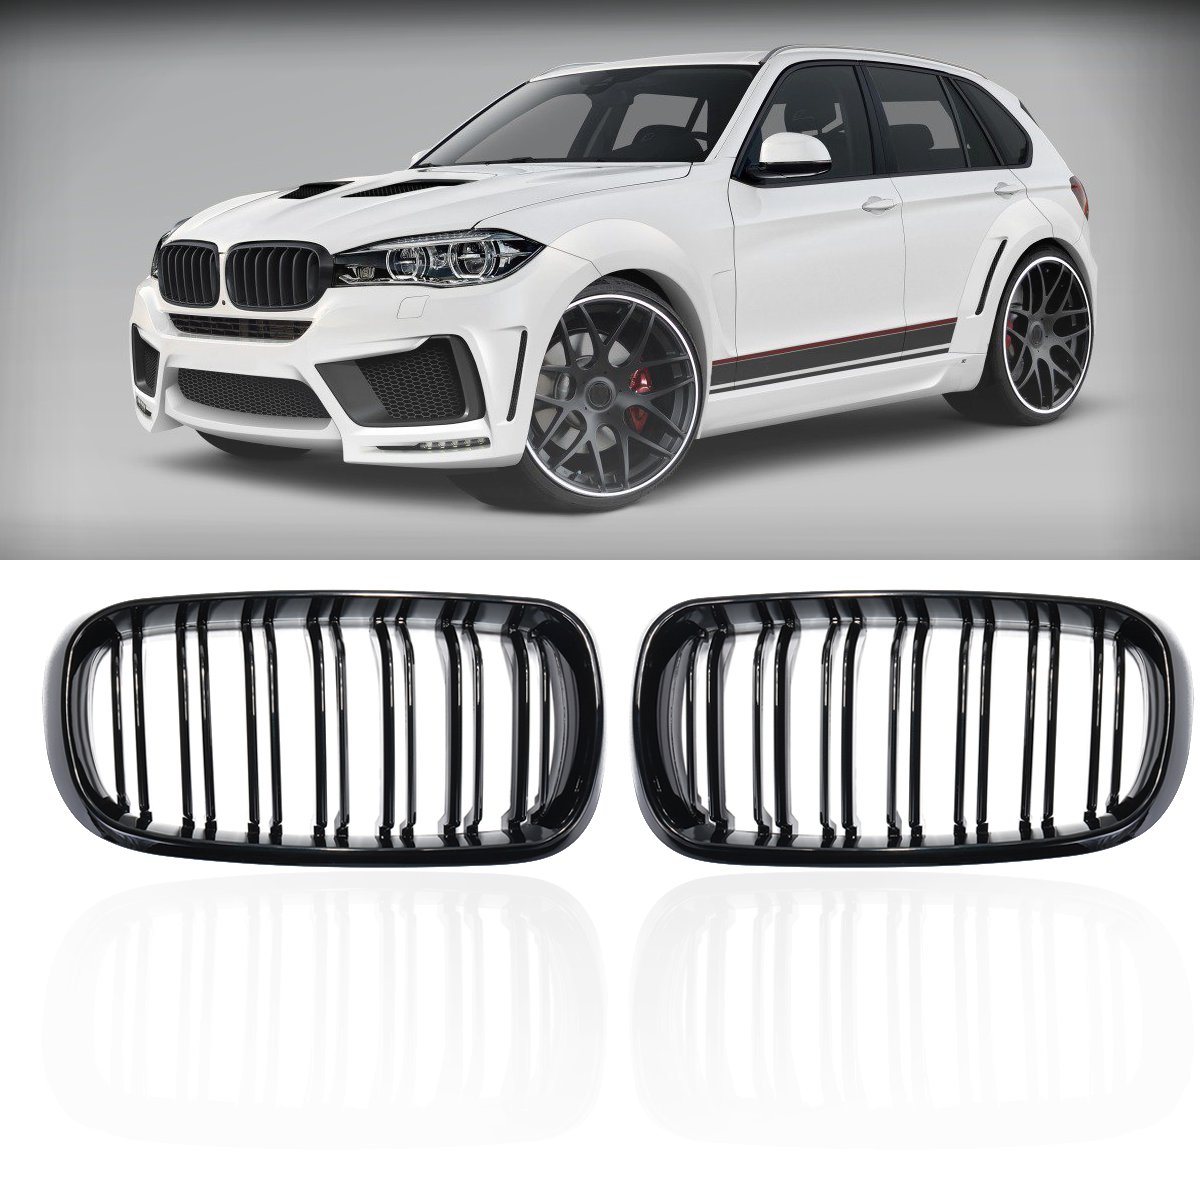 Pair New ABS Replacement Gloss Black Double Slat Front Grill Grille For BMW F15 F16 X5 X6 2014 2015 2016 2018 цена 2017